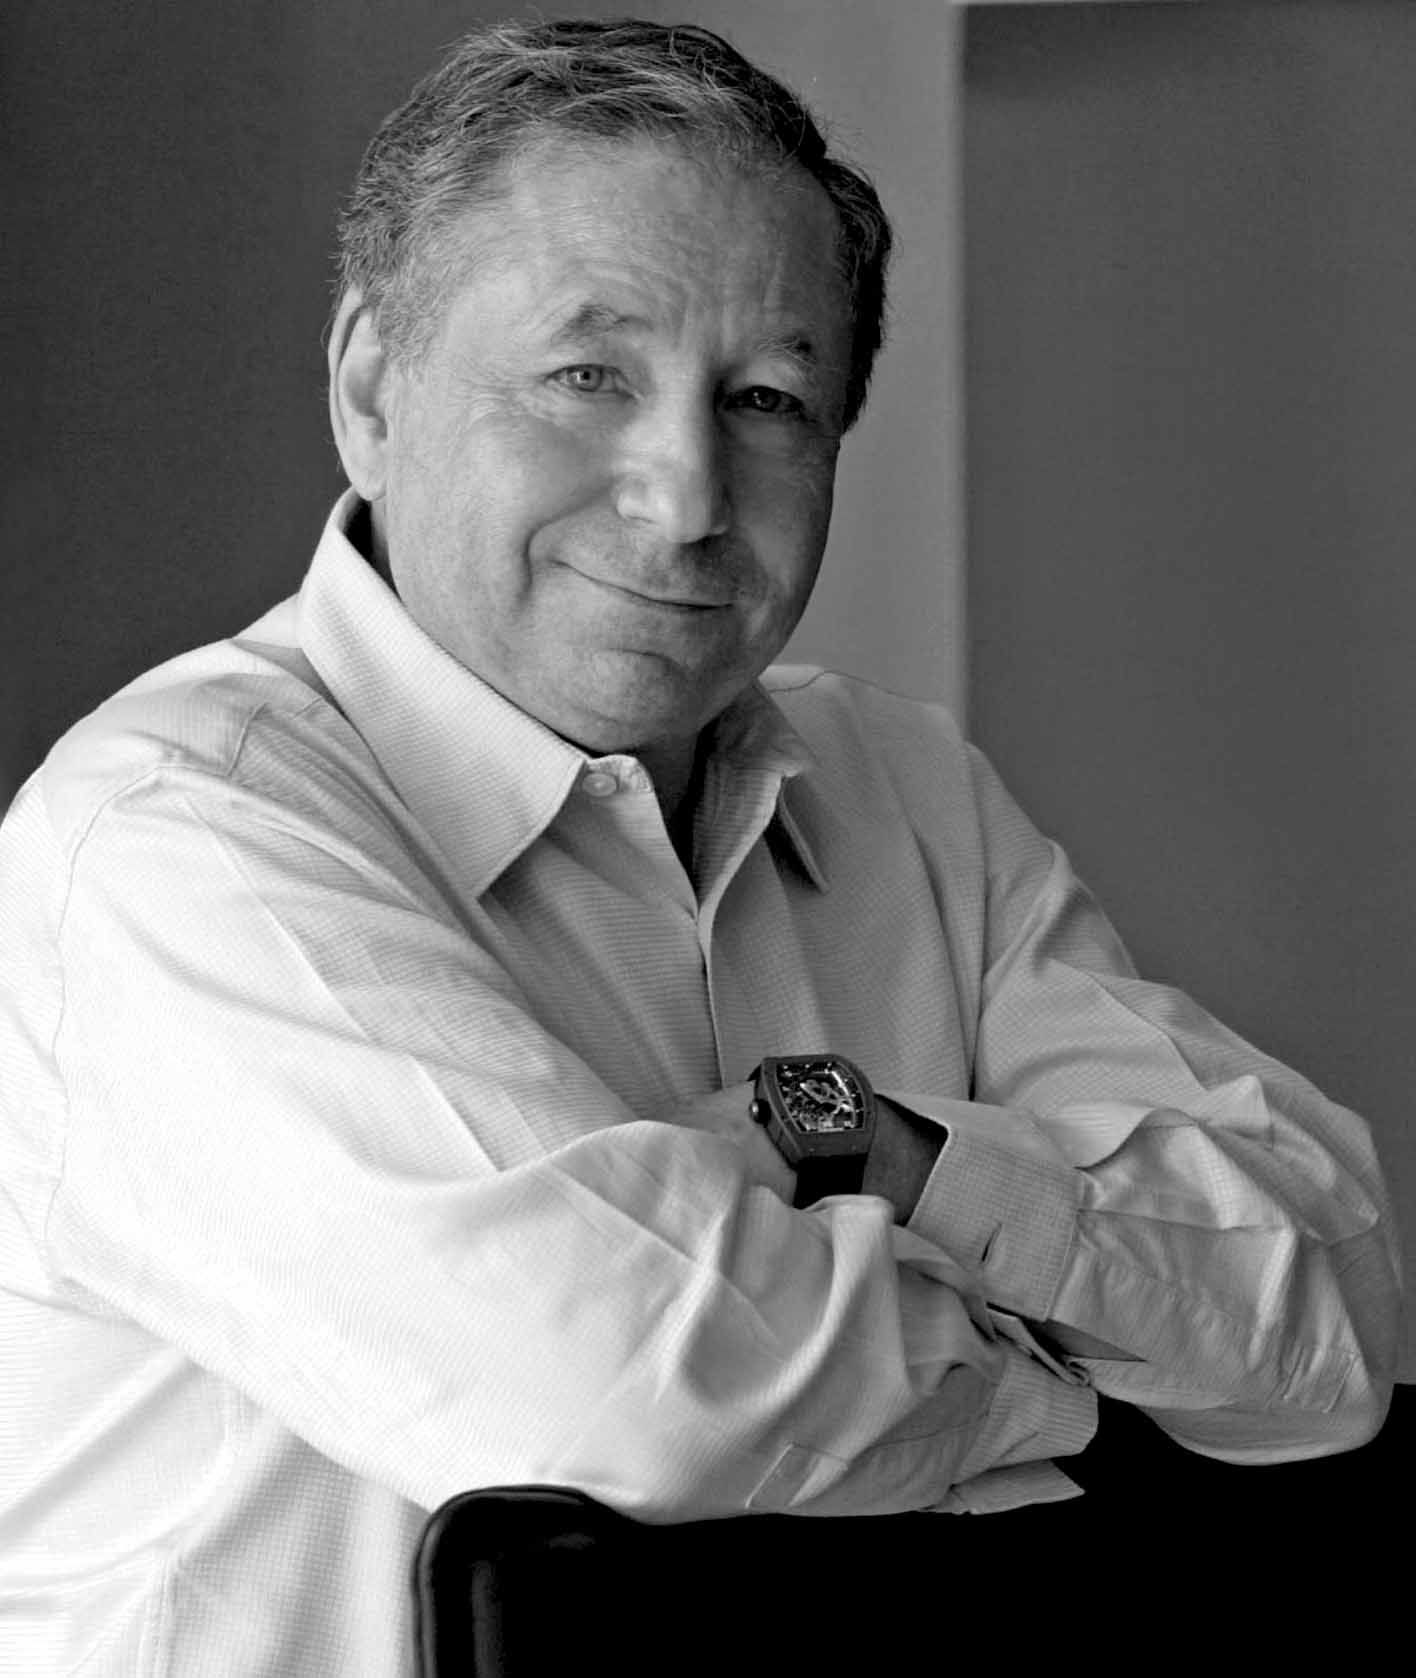 Partners In Time: An Unlikely Friendship Between Richard Mille and Jean Todt